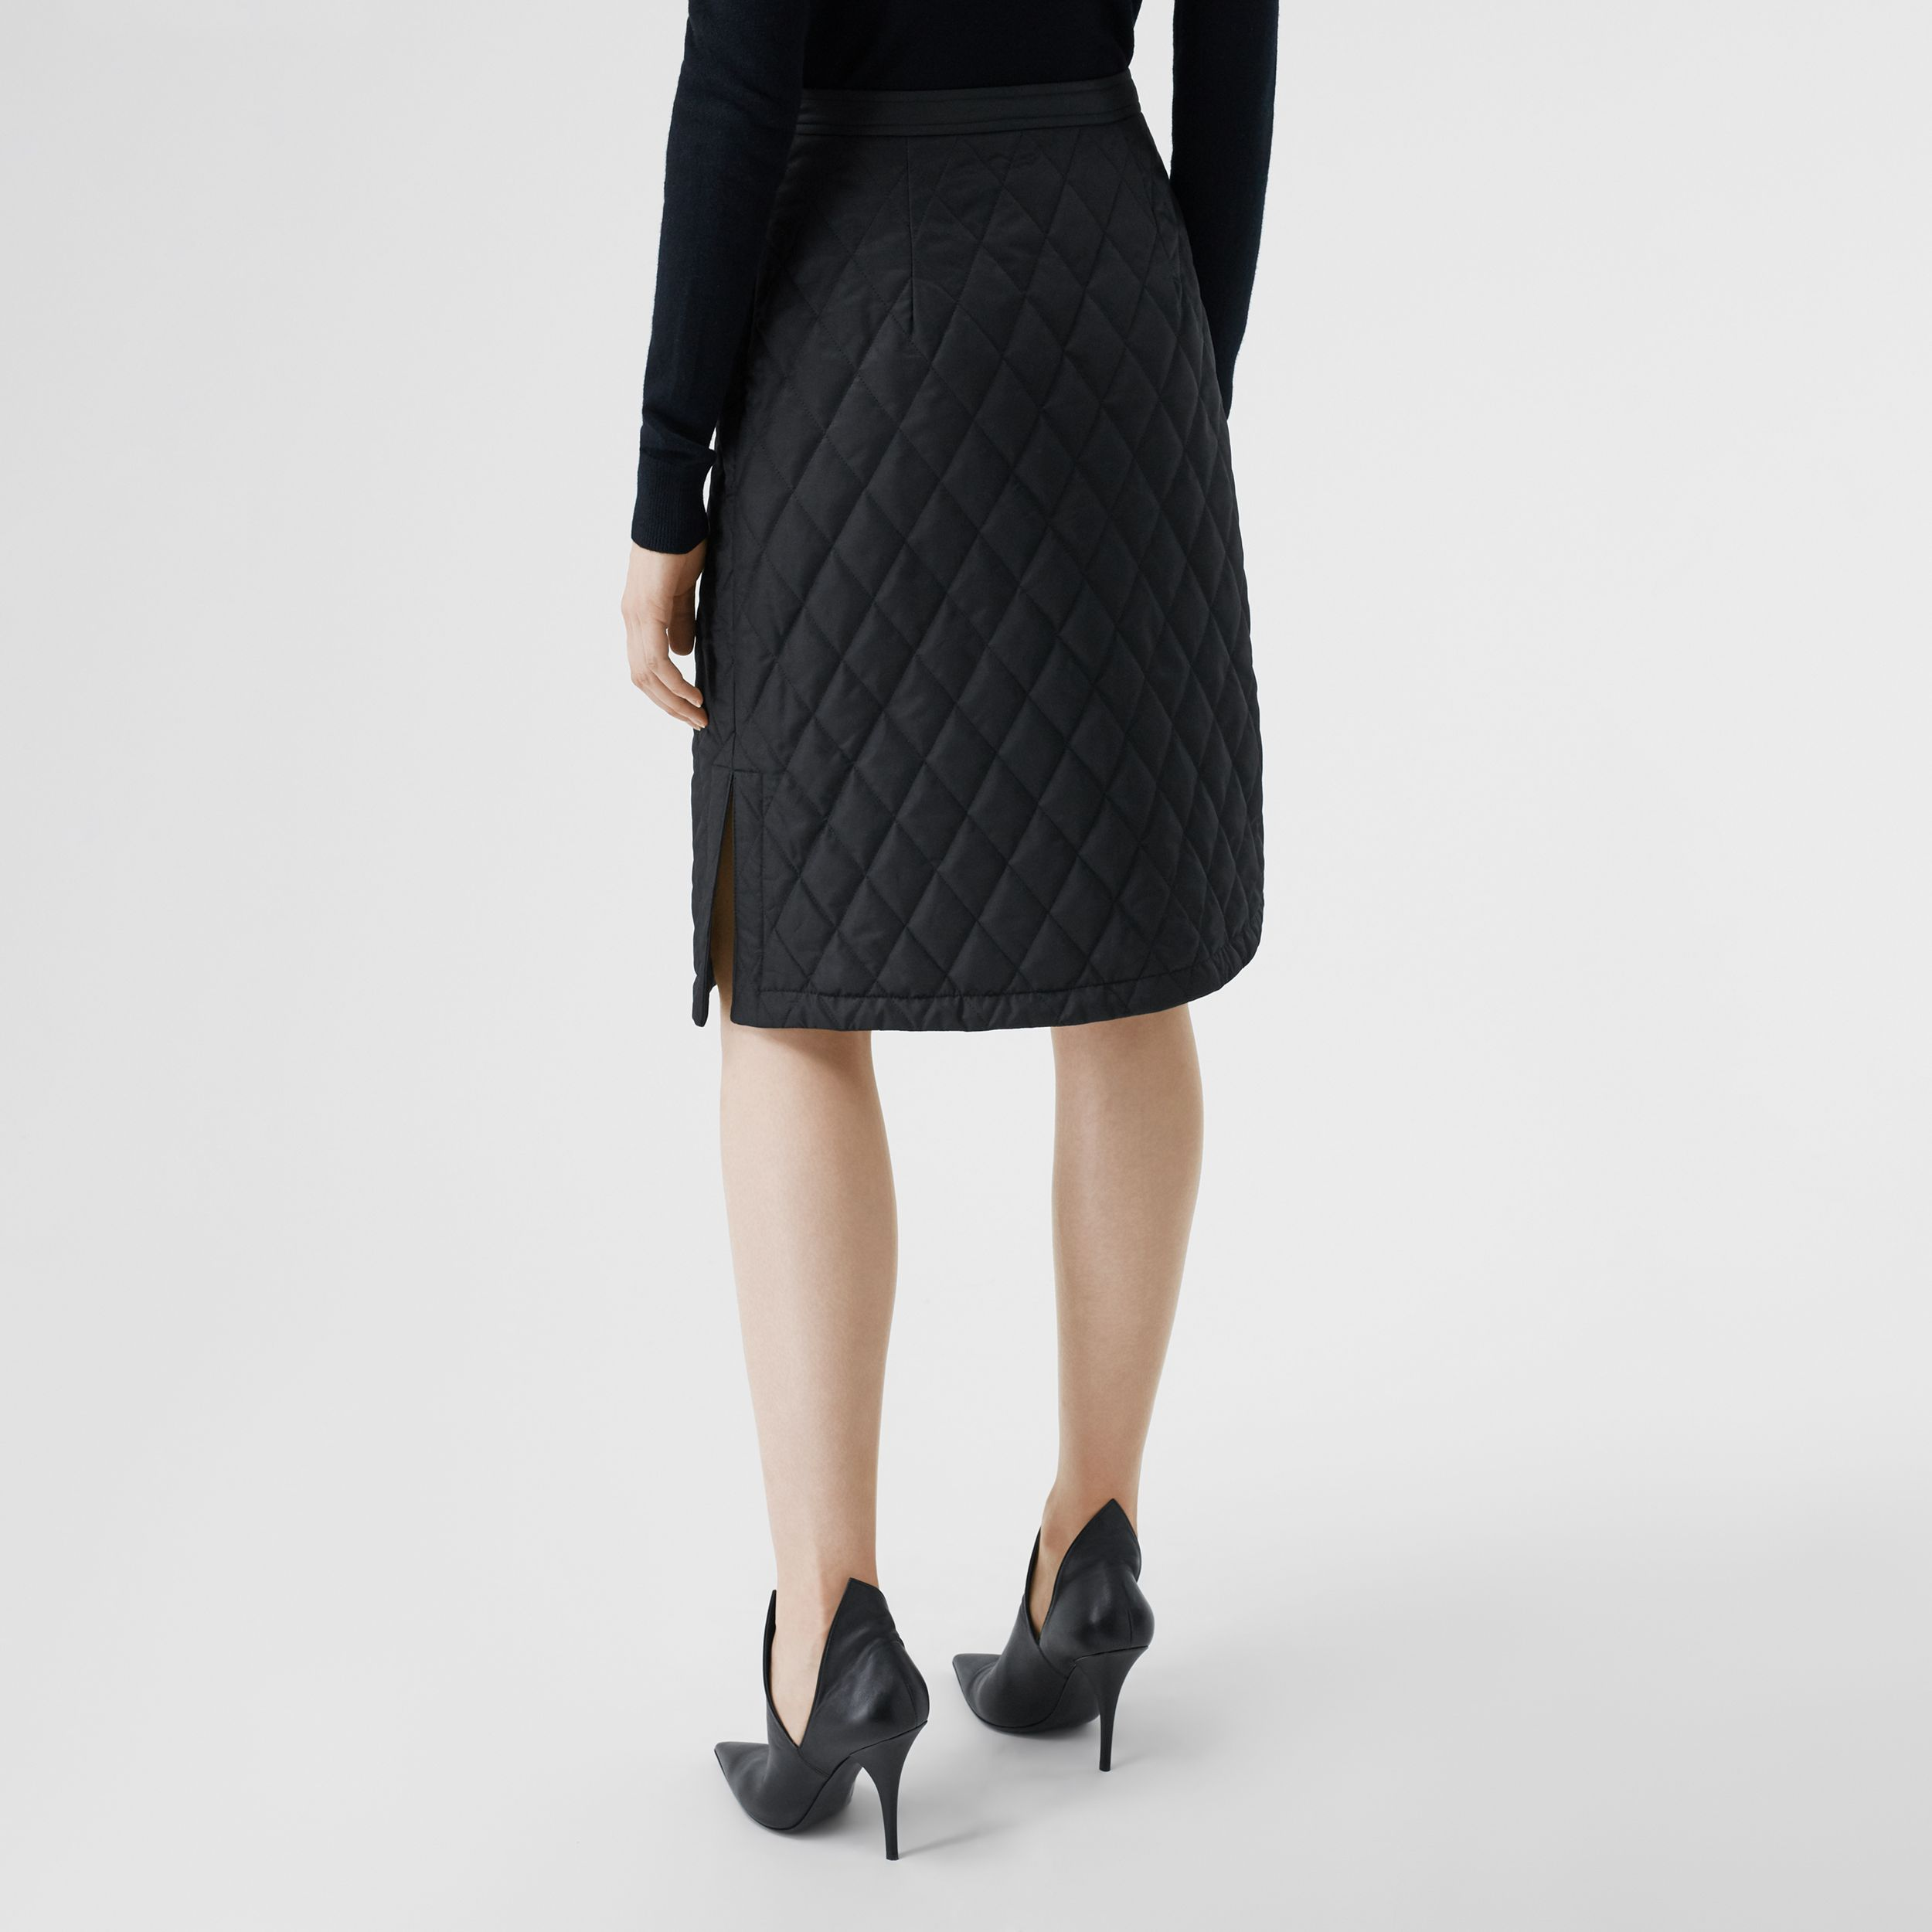 Diamond Quilted A-line Skirt in Black - Women | Burberry Australia - 3